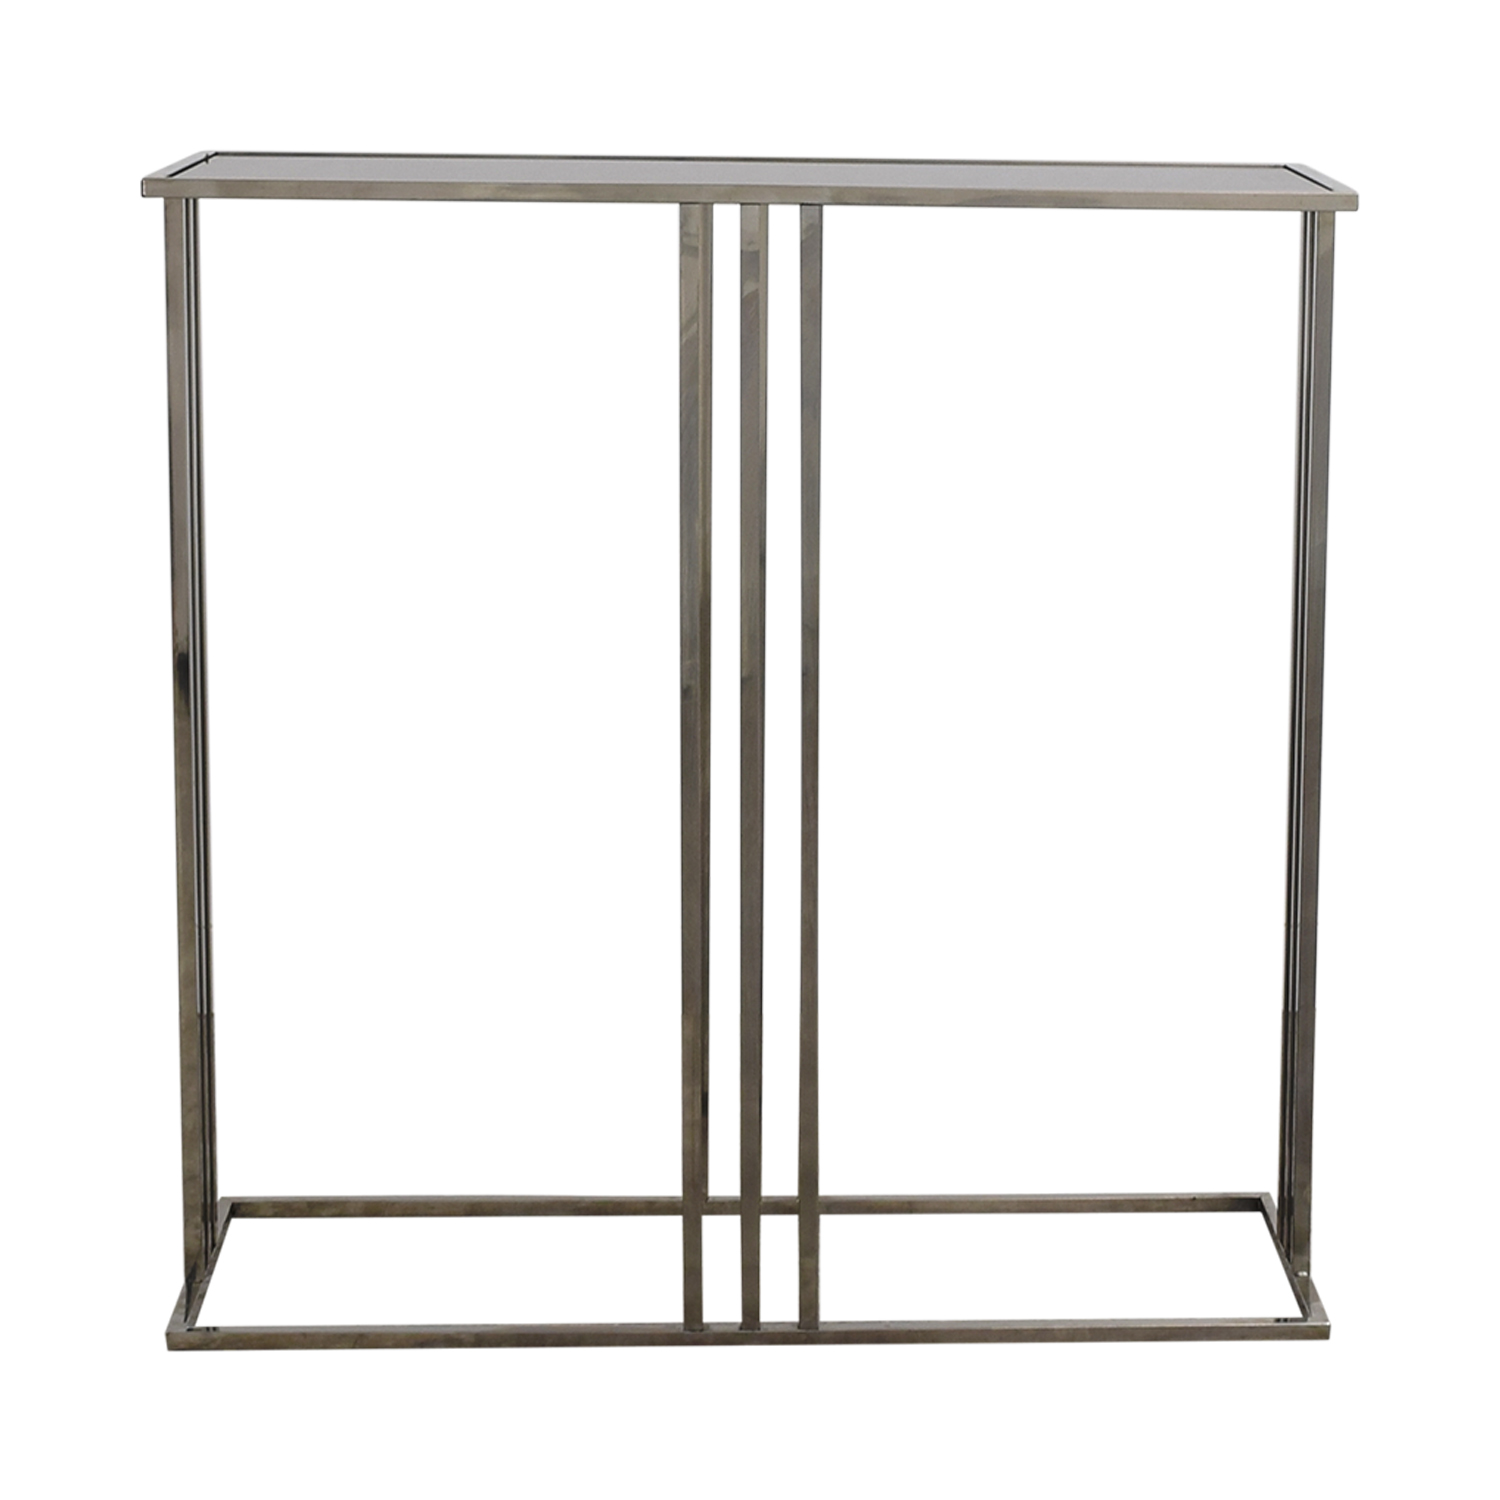 HomeGoods HomeGoods Black and Silver Entryway Table on sale